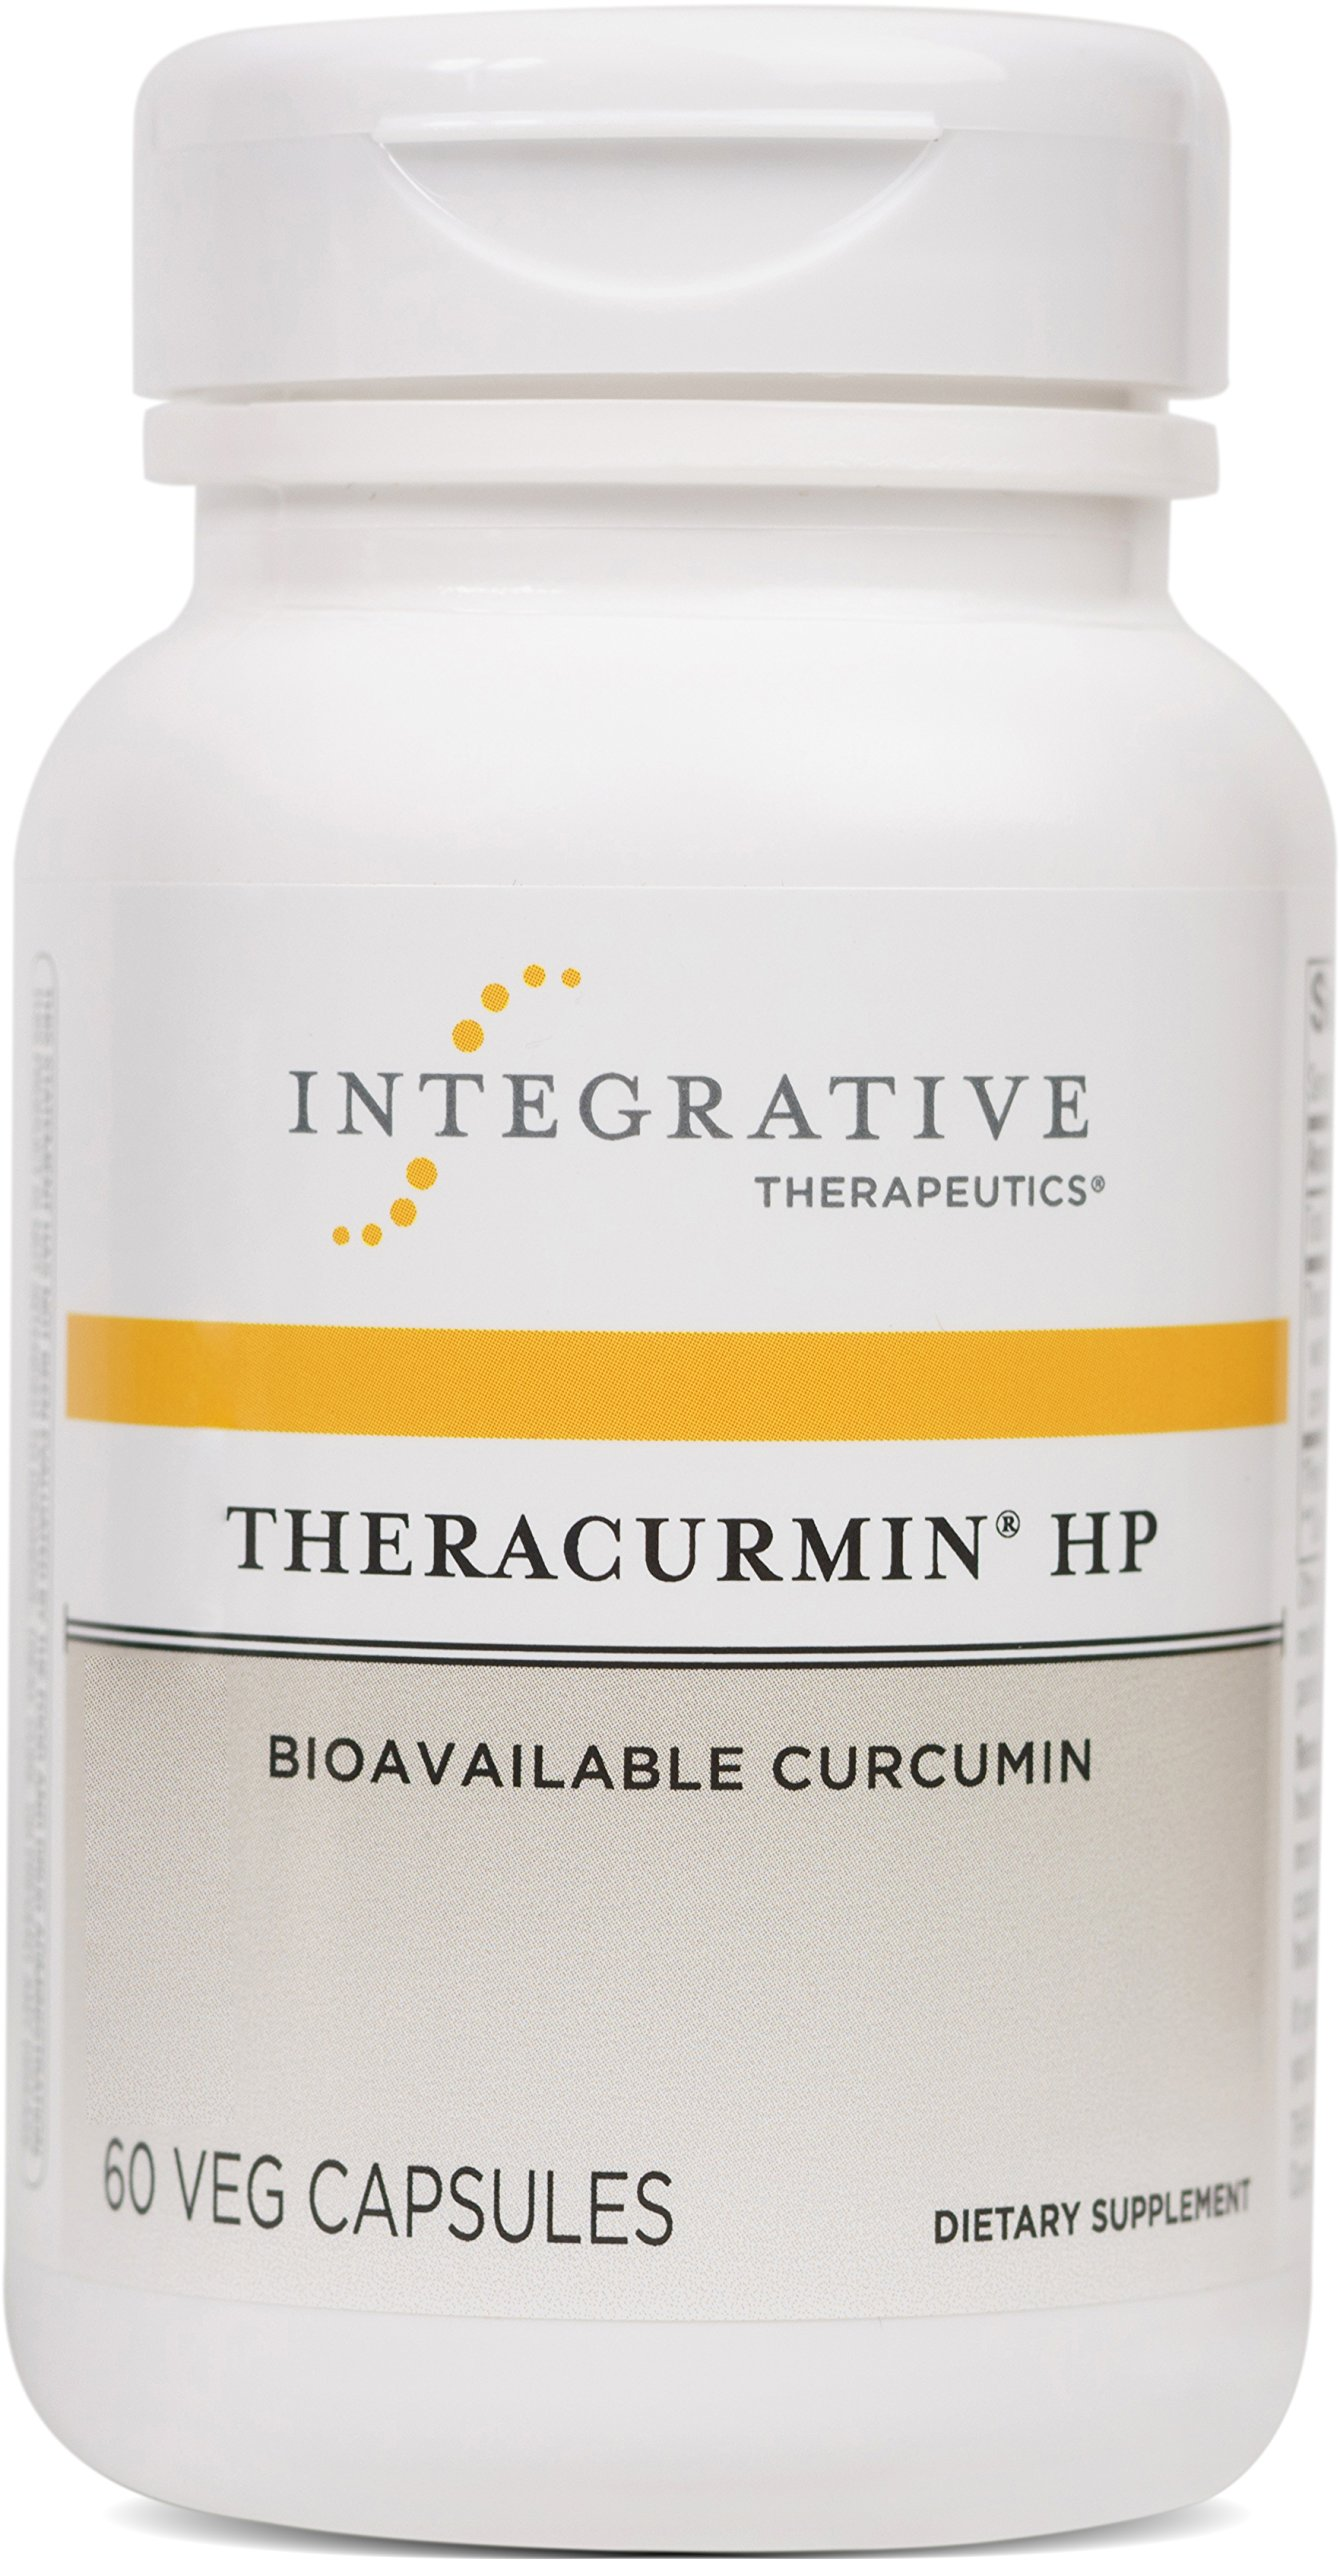 Integrative Therapeutics - Theracurmin® HP - Curcumin Turmeric Supplement - 27x More Bioavailable than Other Extracts - Increased Absorption - NSF Certified for Sport - Vegan - 60 Capsules